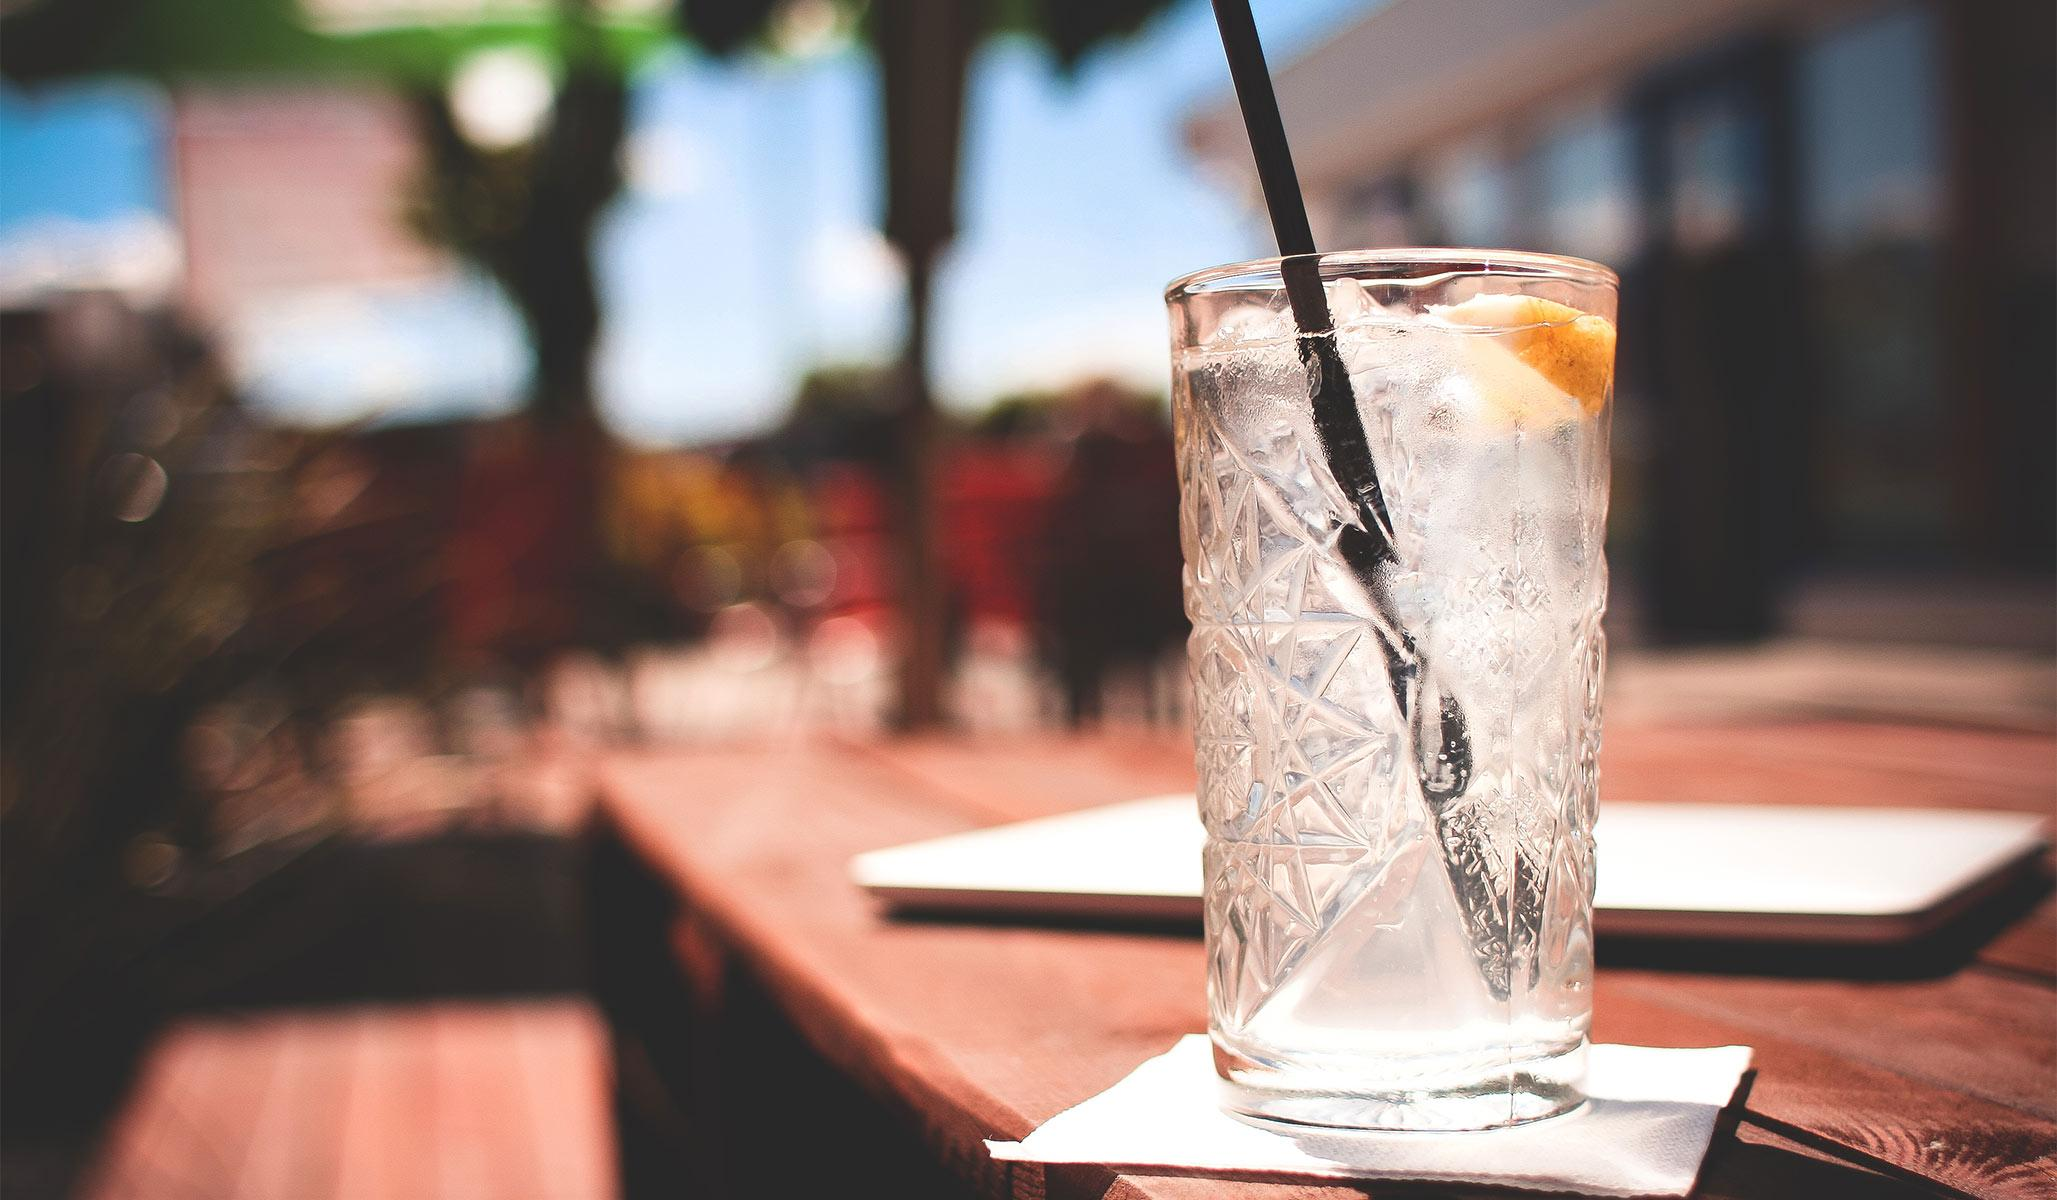 California bill seeks to curb the use of straws